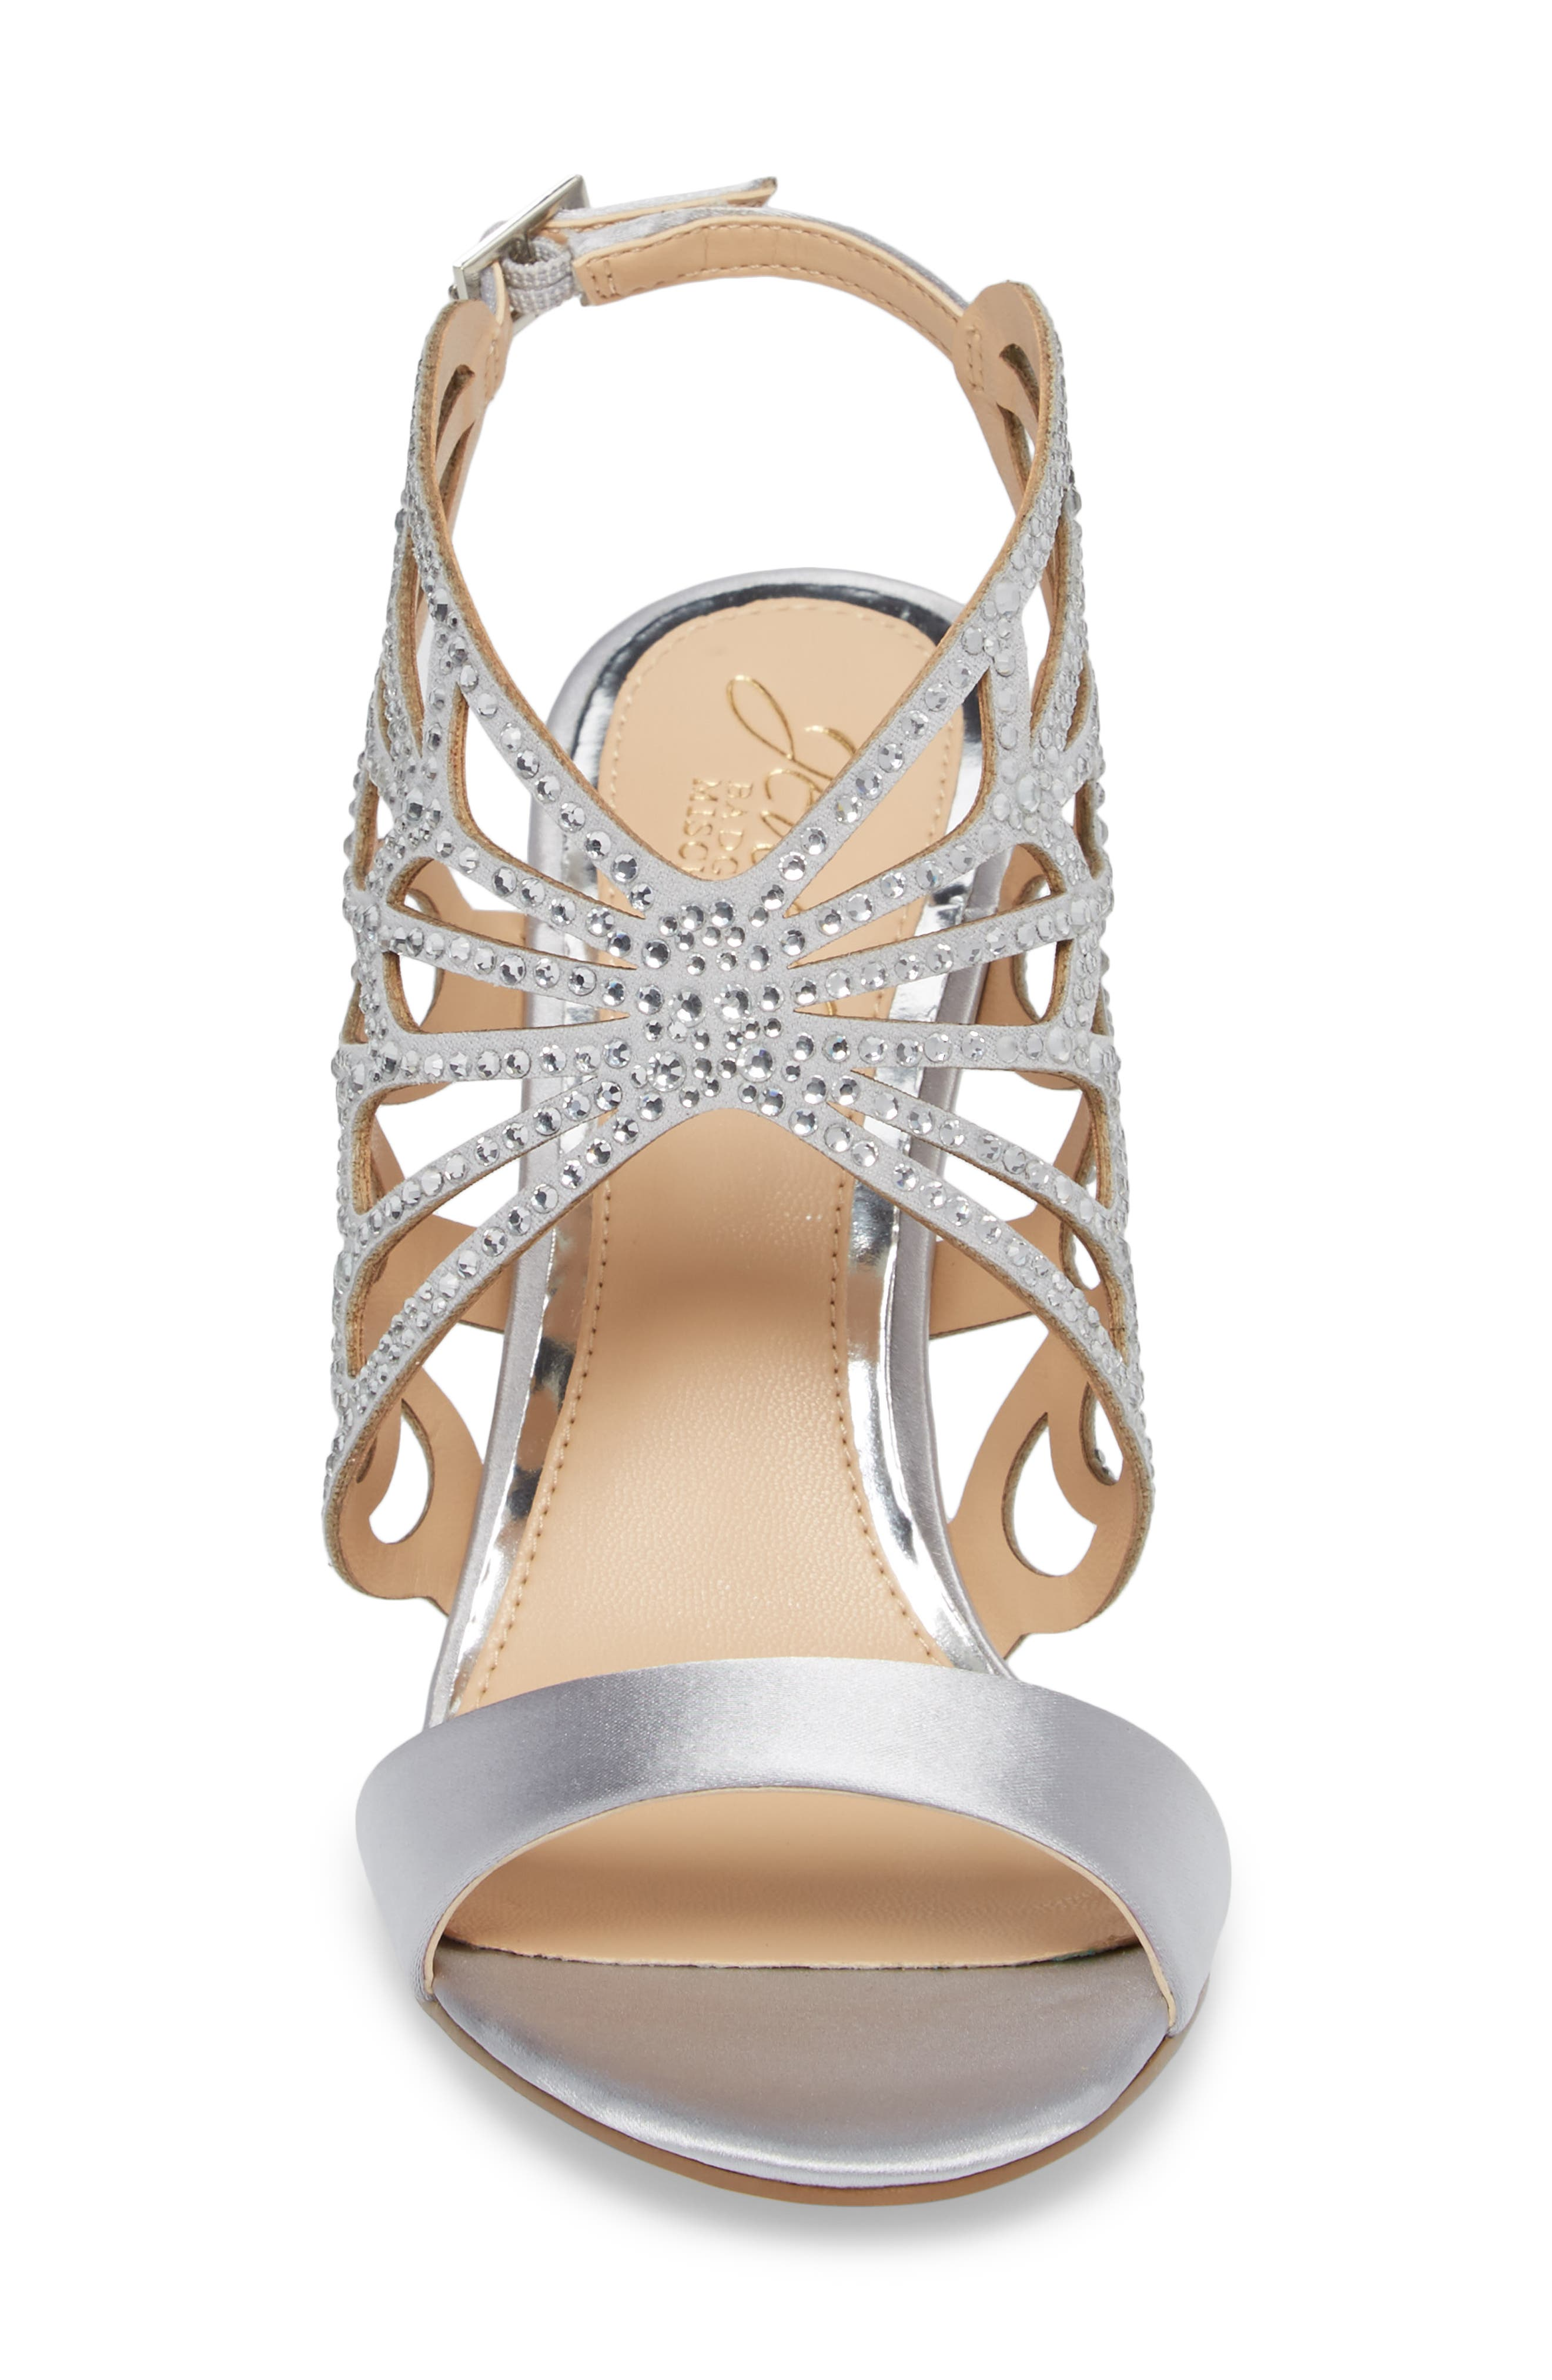 Taresa Crystal Embellished Butterfly Sandal,                             Alternate thumbnail 4, color,                             Silver Satin